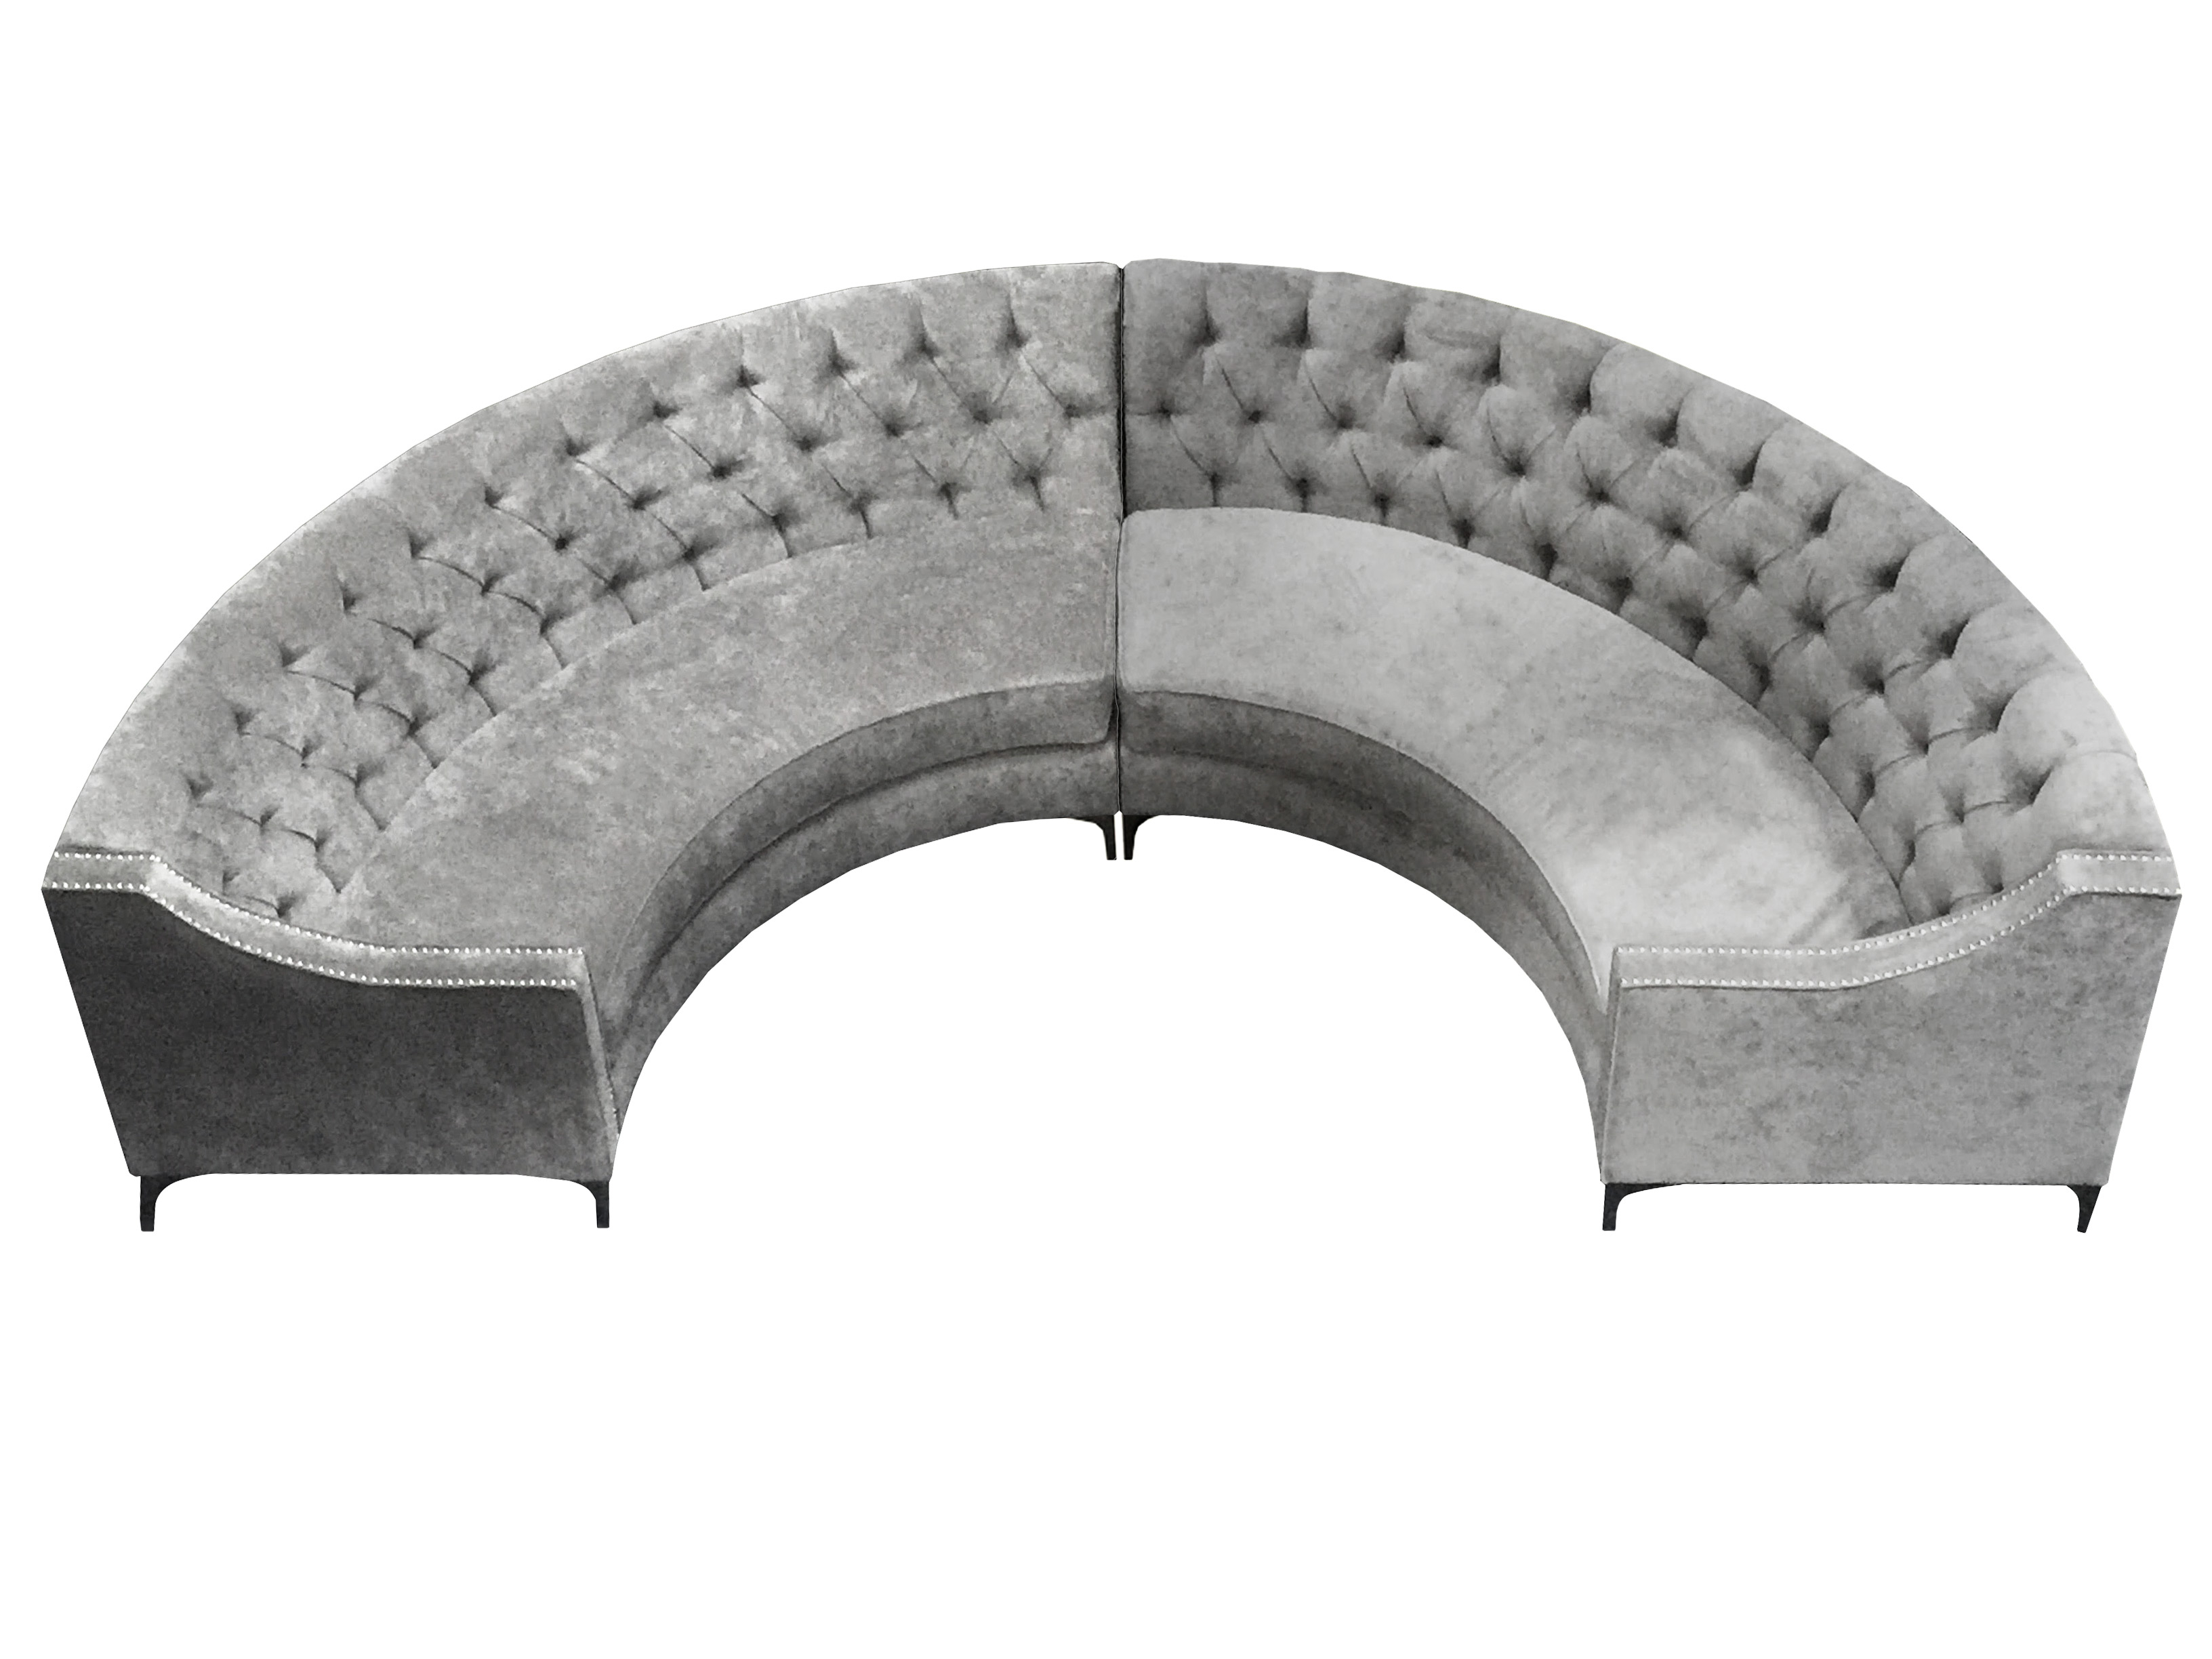 Chastine Curved Banquette Sofa Lux Lounge EFR 888 247 4411